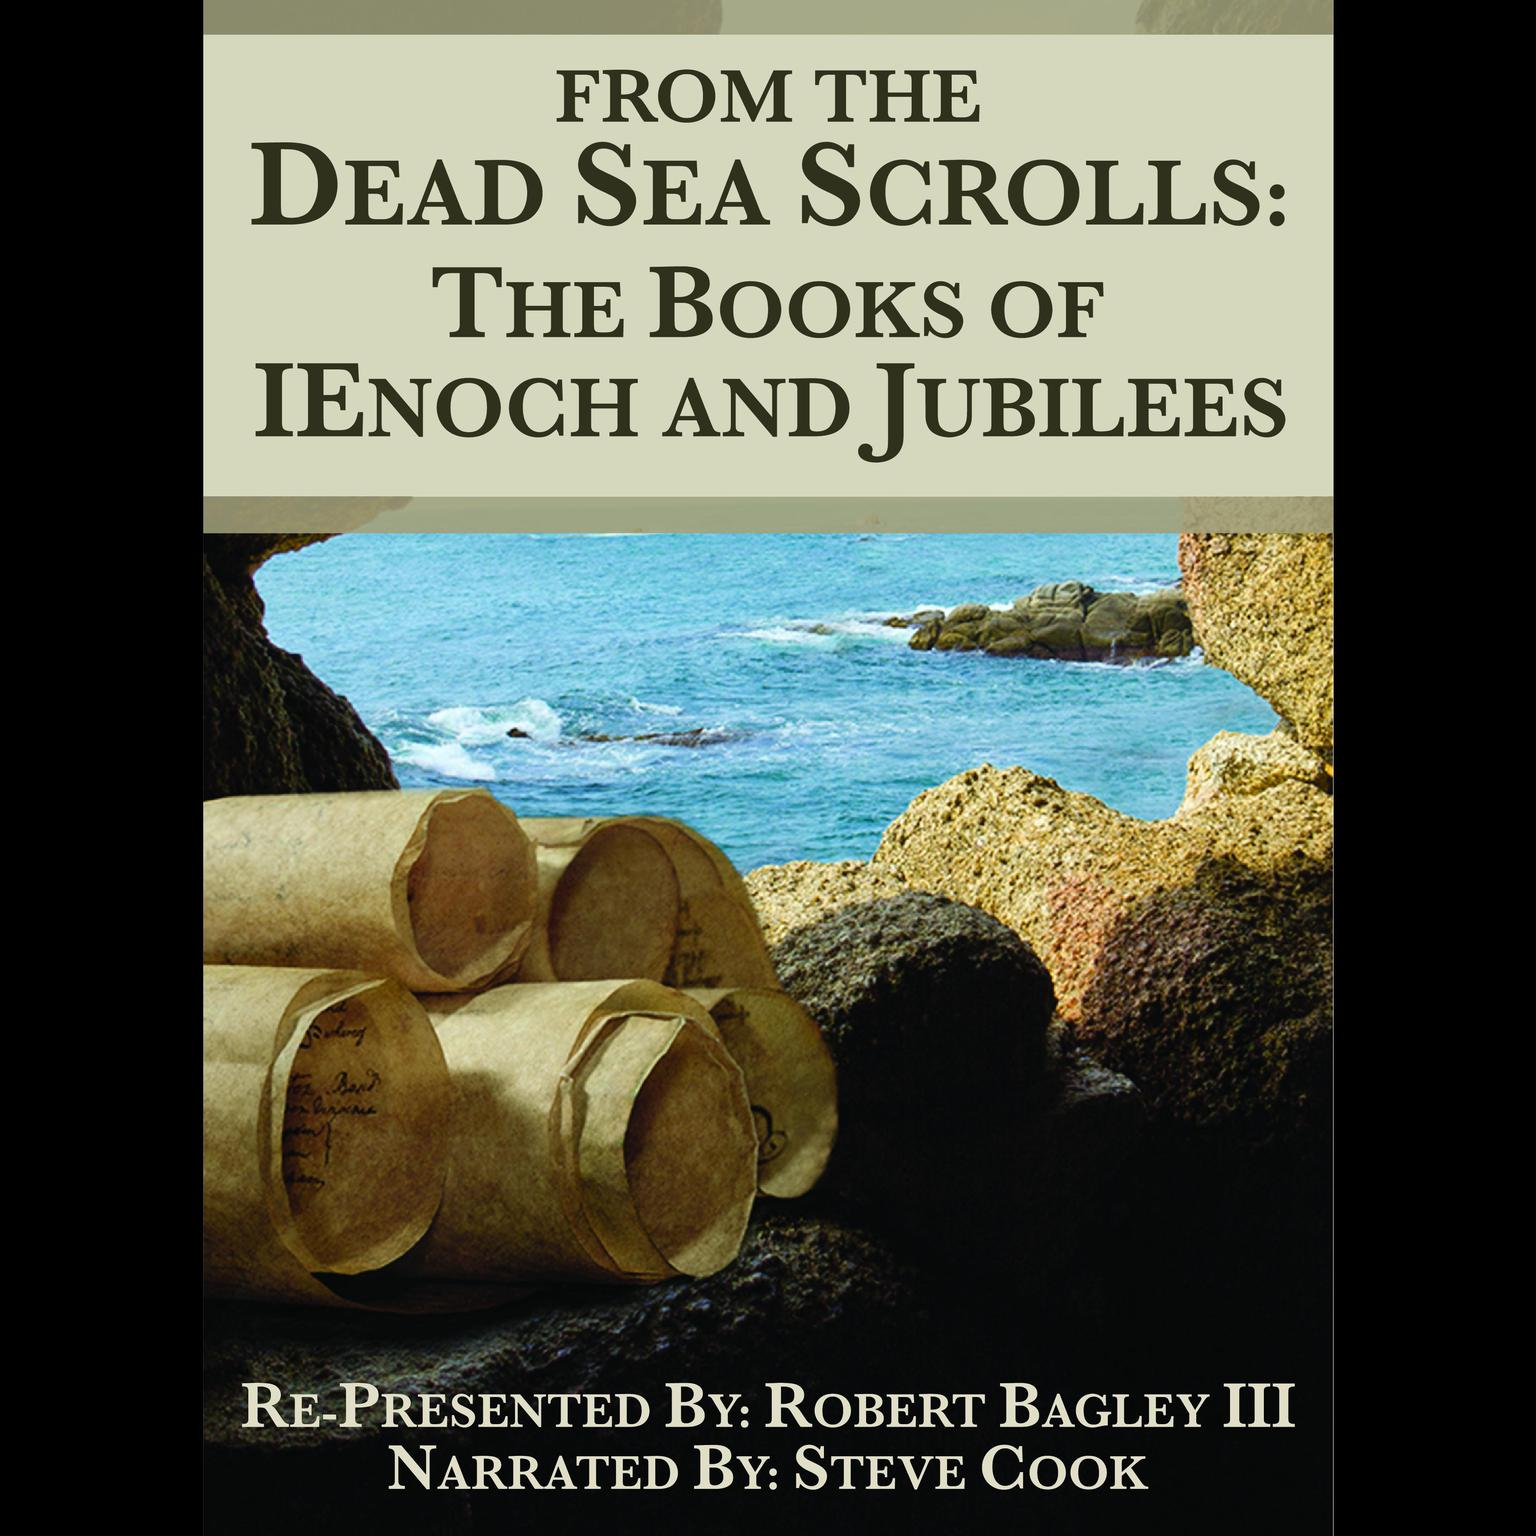 From The Dead Sea Scrolls: The Books of 1Enoch & Jubilees: The Books of 1 Enoch & Jubilees Audiobook, by Robert Bagley